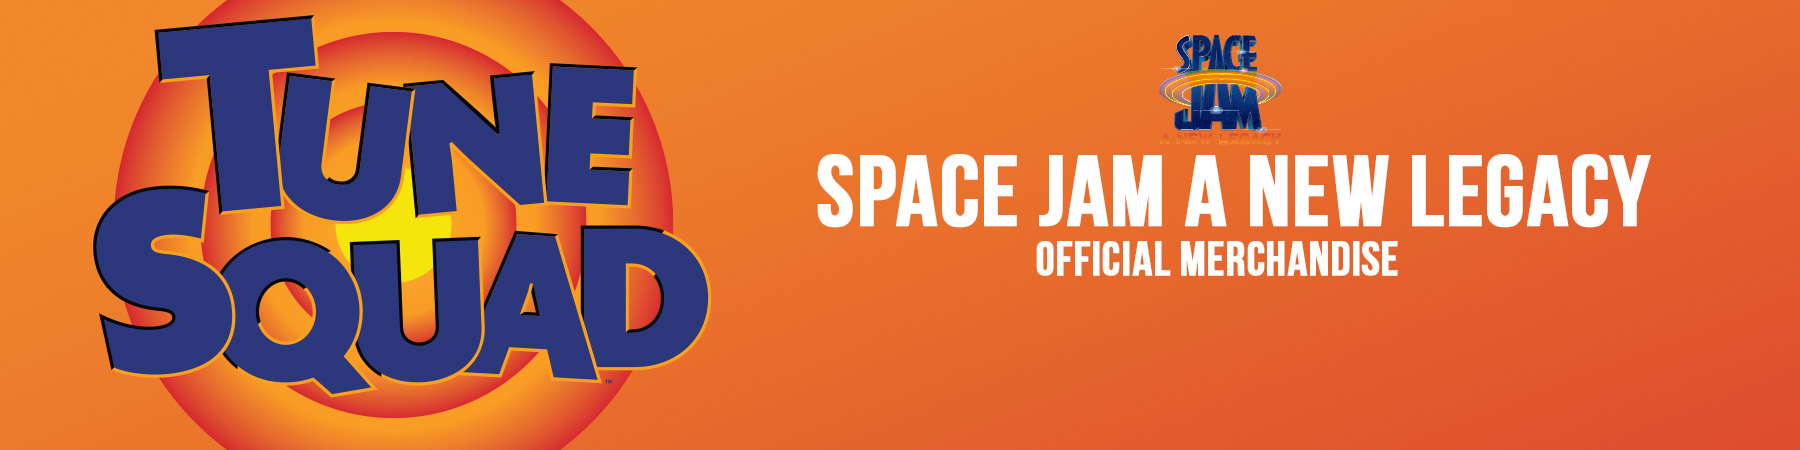 Space Jam category